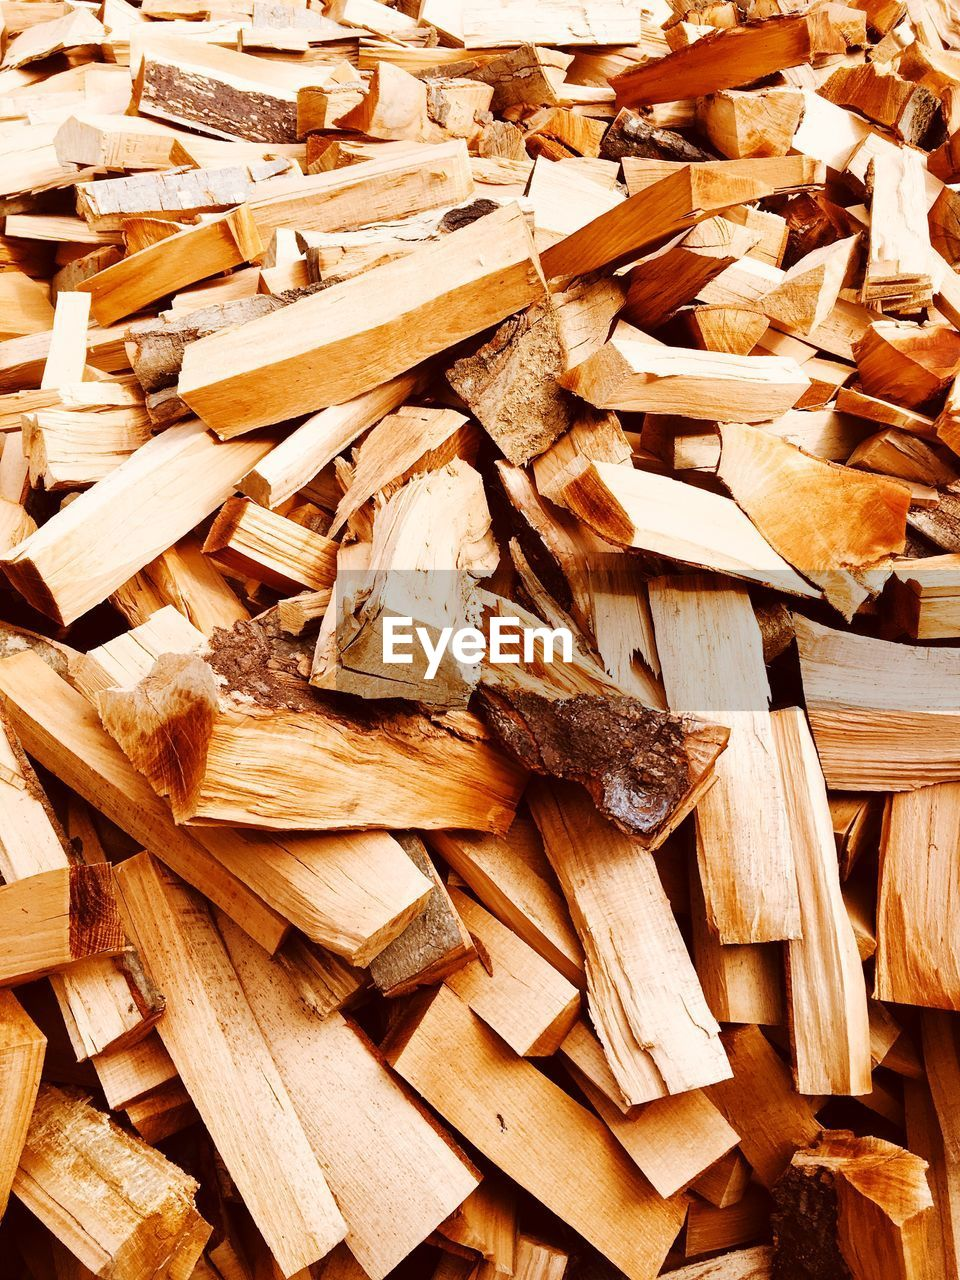 wood - material, large group of objects, wood, full frame, timber, abundance, backgrounds, log, no people, heap, still life, brown, stack, tree, close-up, firewood, lumber industry, high angle view, forest, fossil fuel, chopped, woodpile